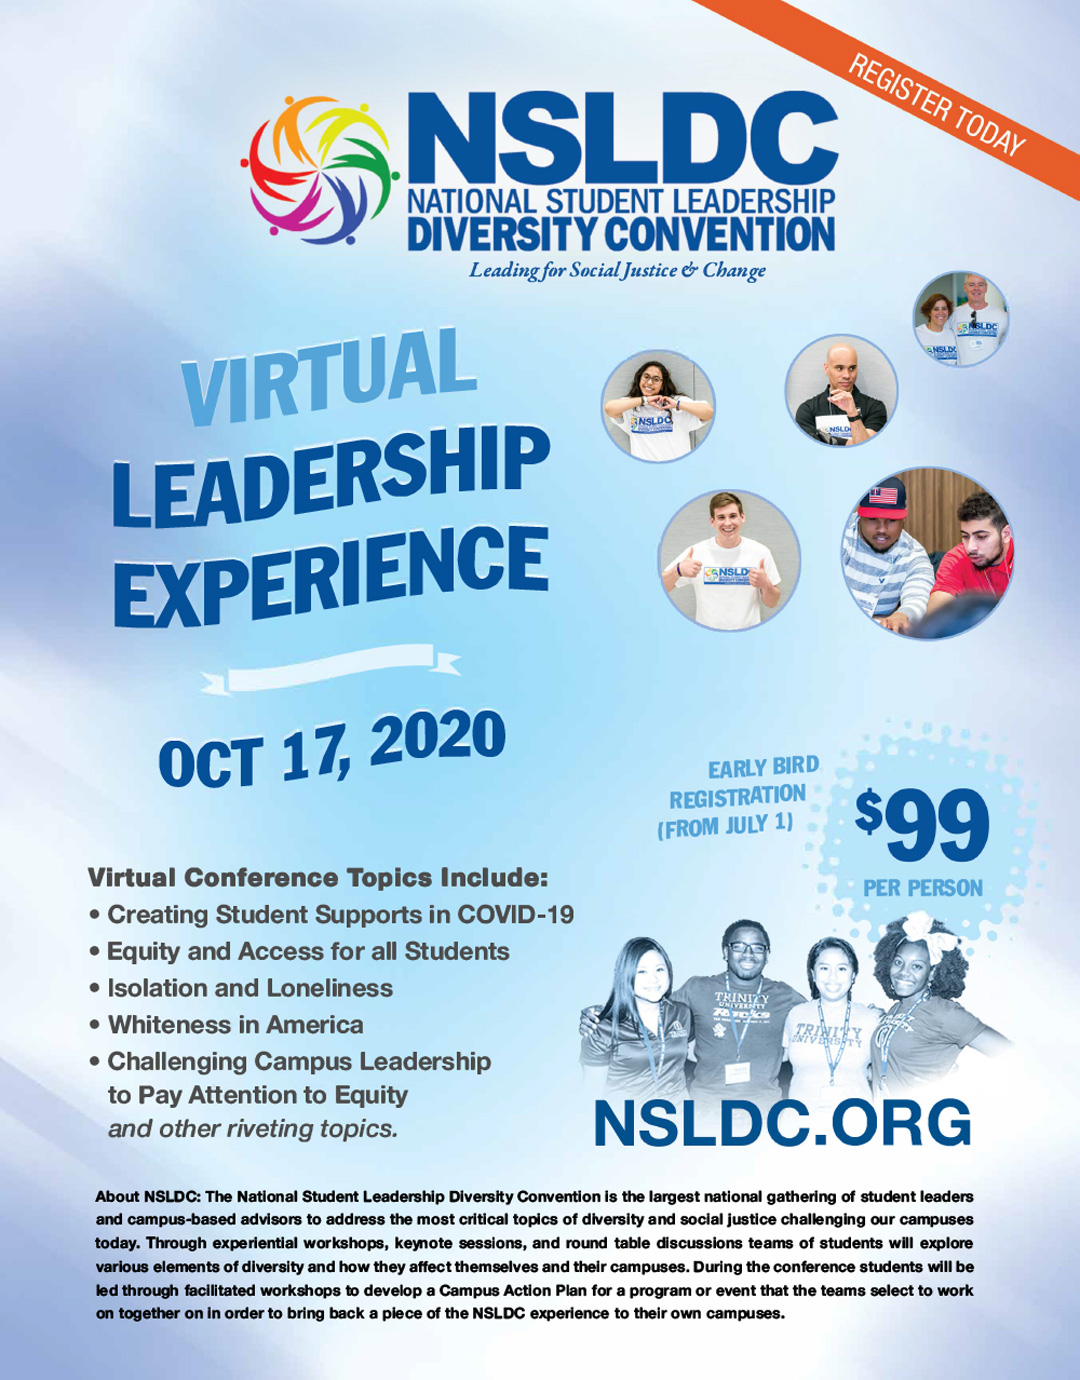 NSLDC Virtual Conference 2020